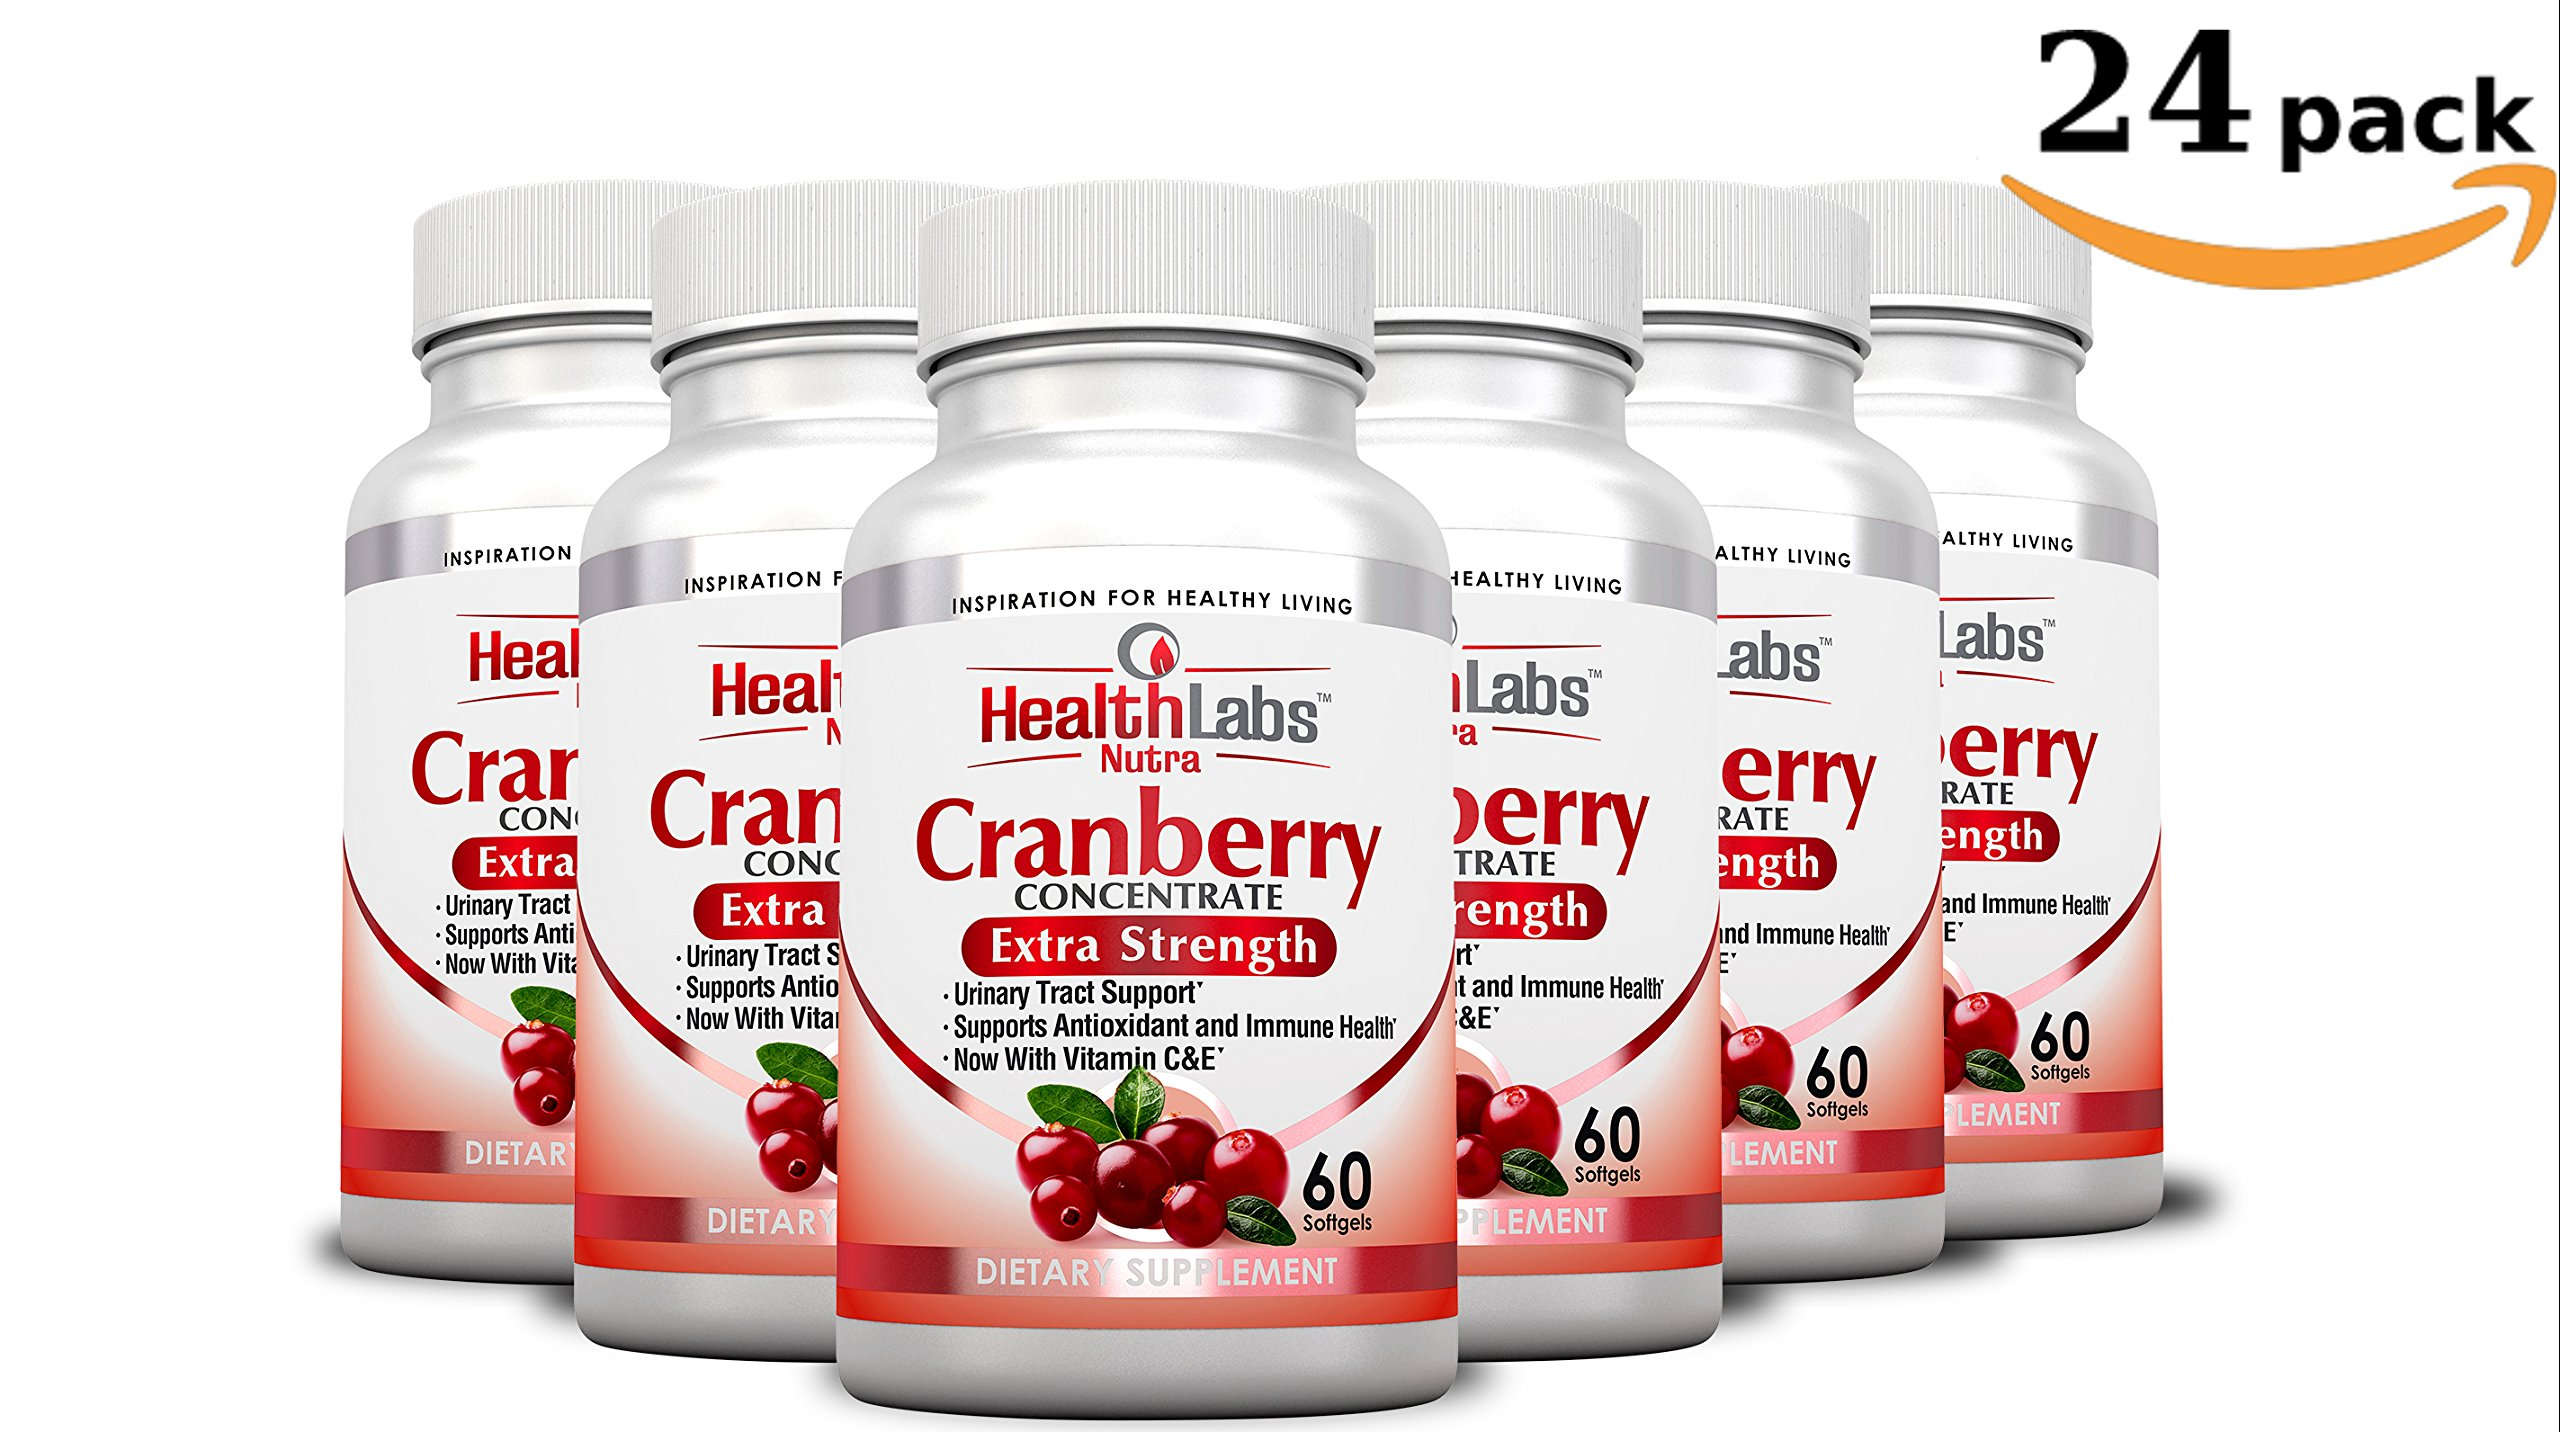 Health Labs Nutra 50:1 Triple-Strength Cranberry Concentrate 24-Month Supply with Vitamins C & E – Promotes Urinary Tract and Immune Support- (Pack of 24)